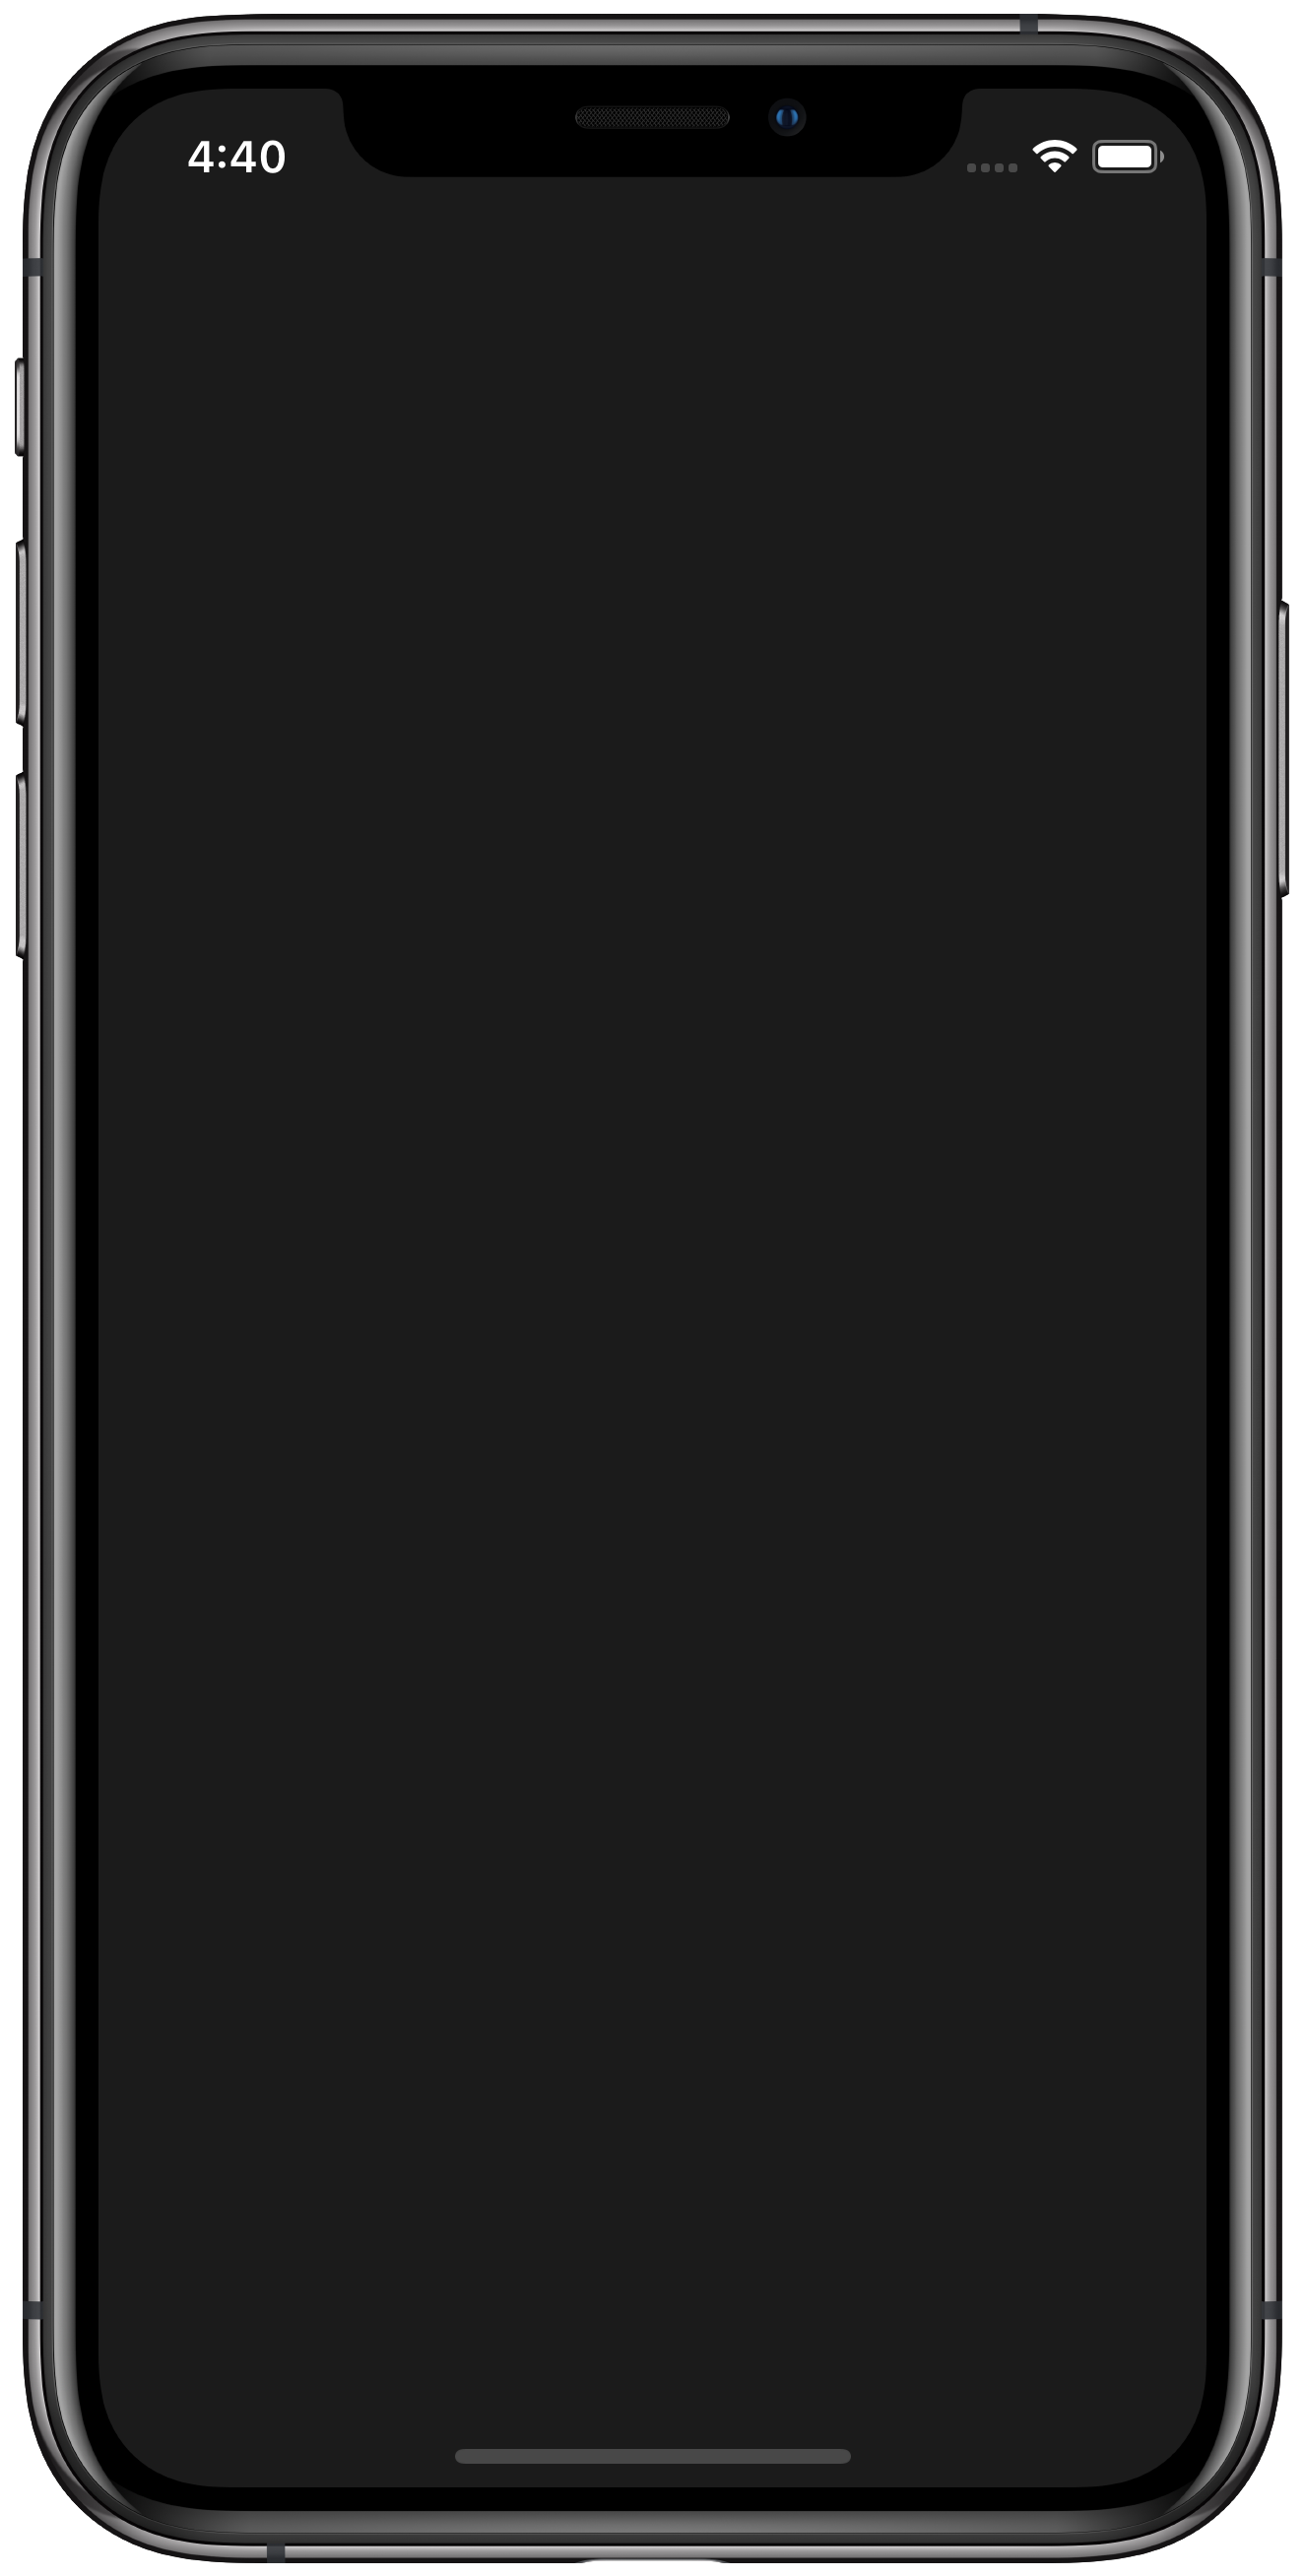 Dark iPhone app with light status bar